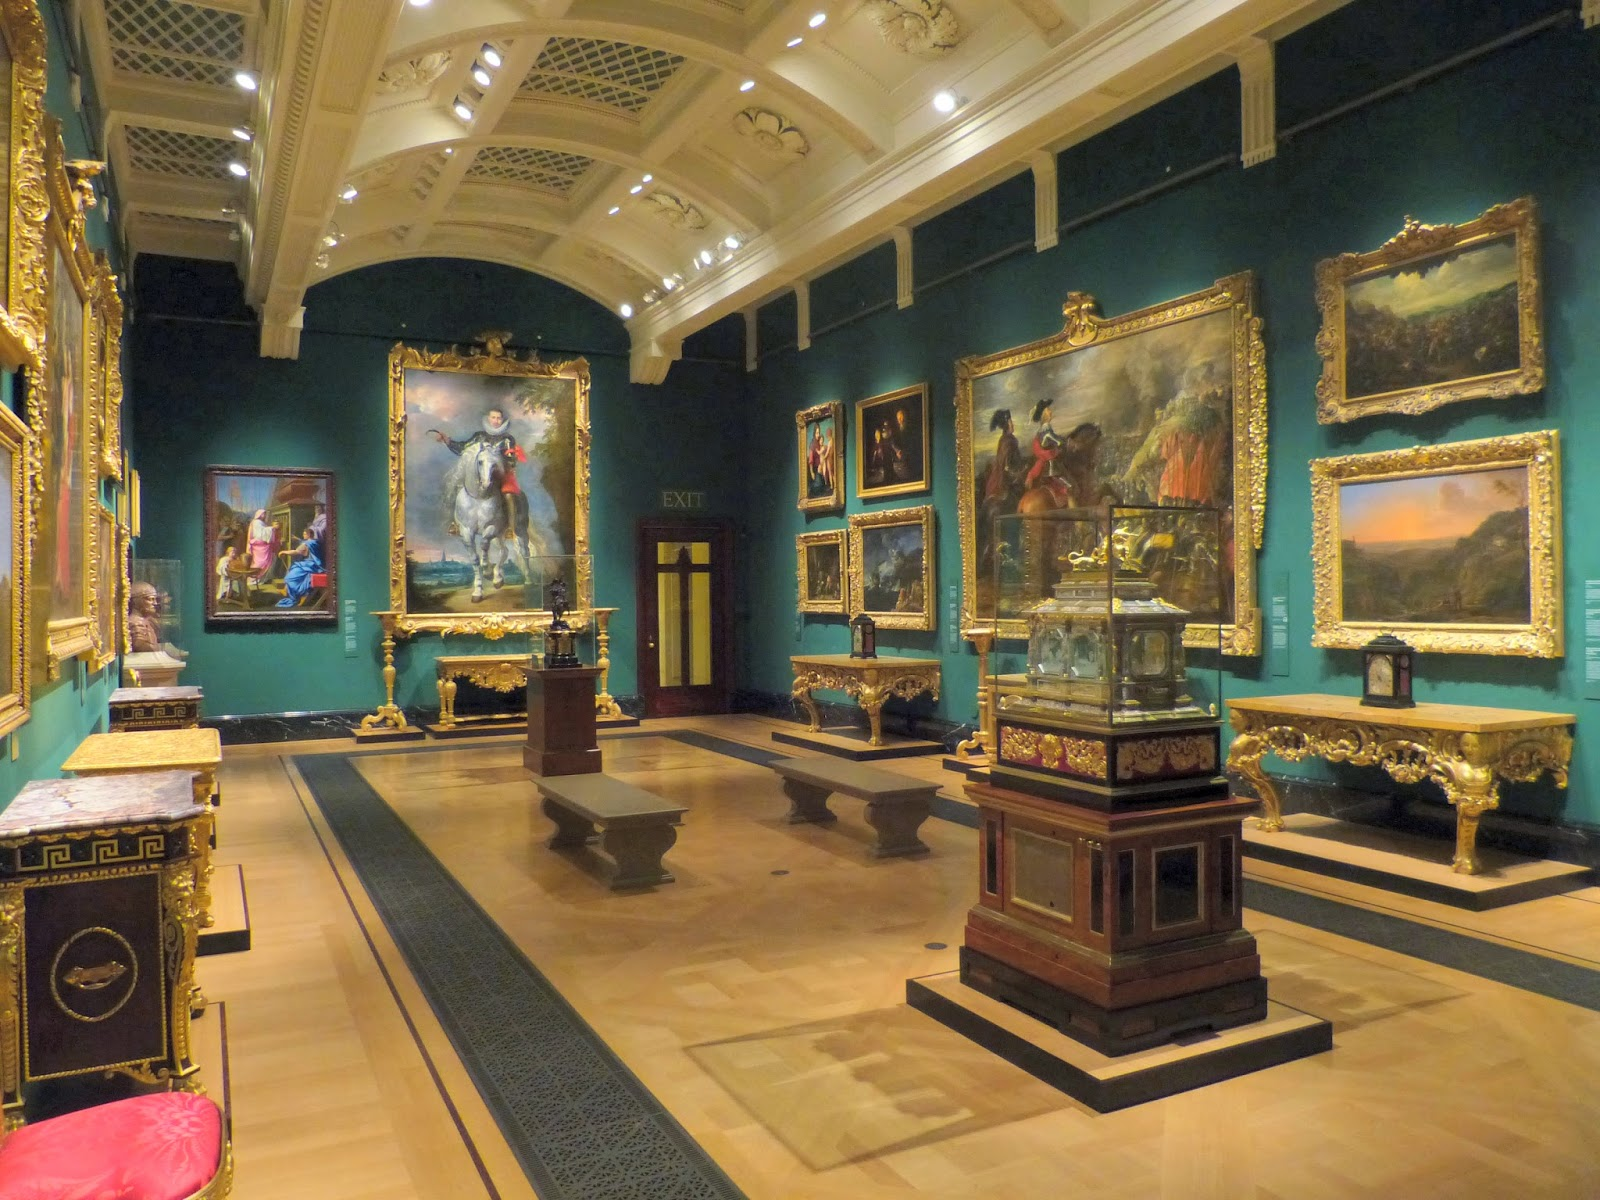 Room displaying Old Masters